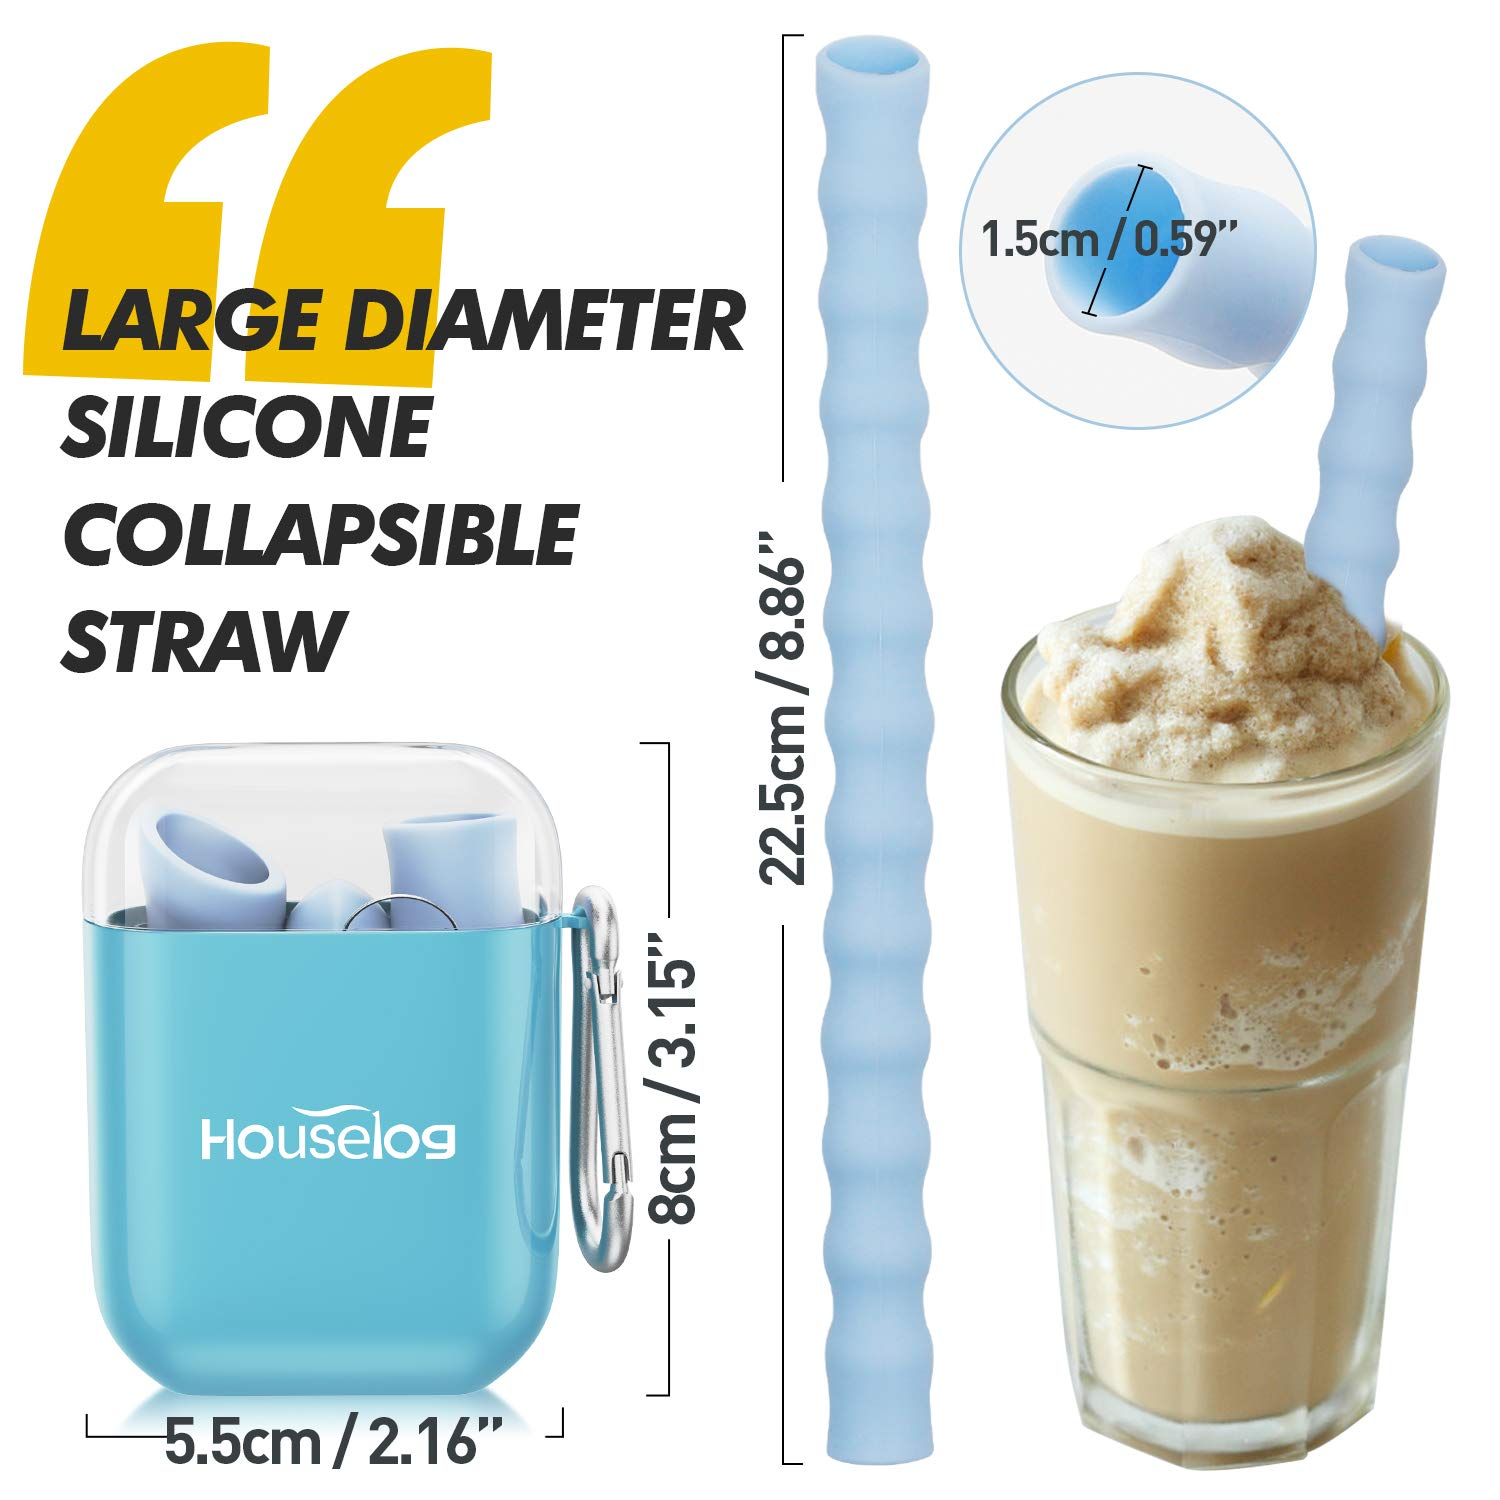 Houselog Reusable Straws,Large Silicone Foldable Straw Collapsible Flexible Tube with Cleaning Brush for Drinking and Smoothie 2PCS